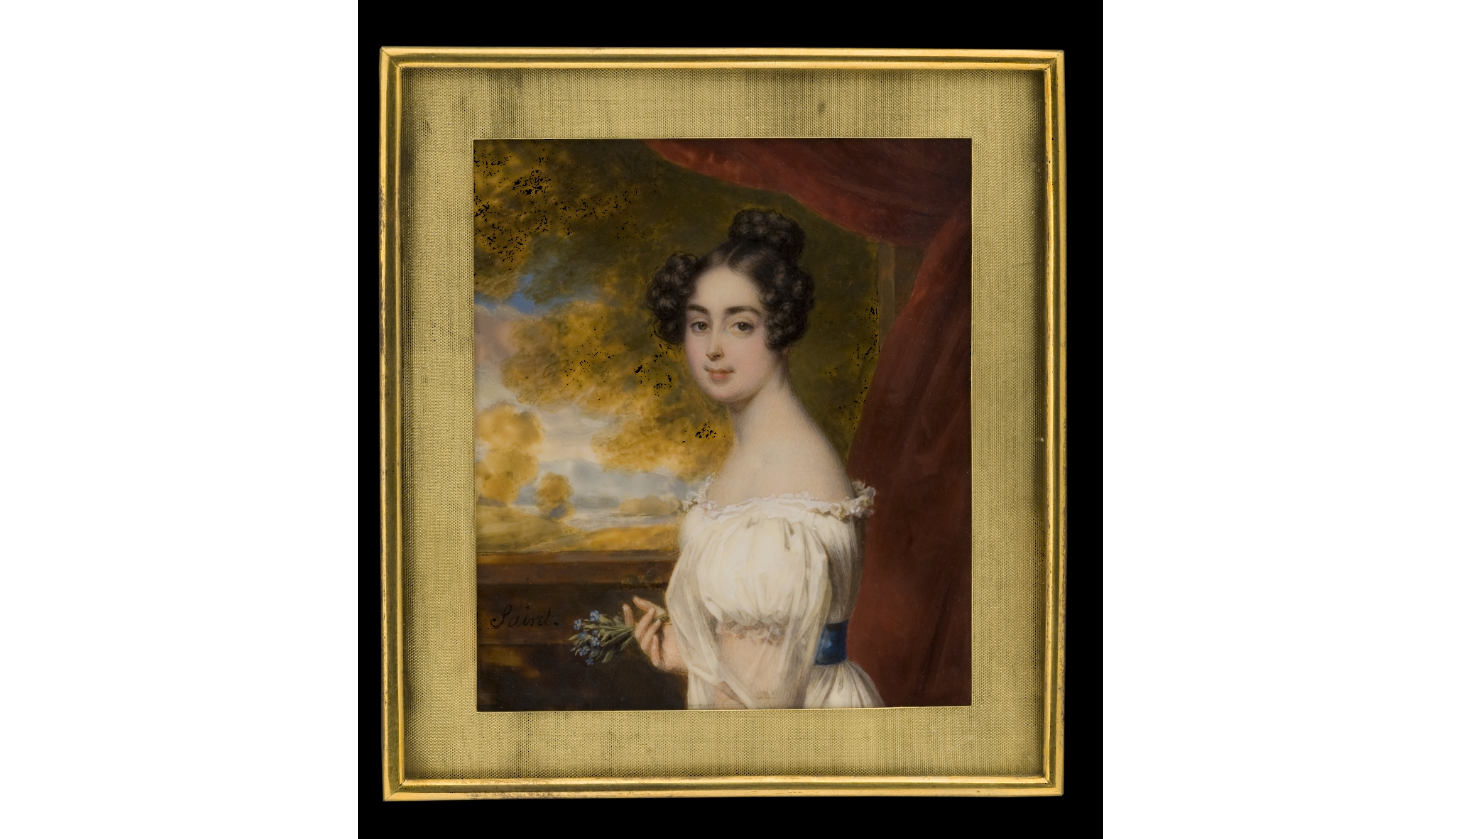 Lady in White Dress with Posy of Forget-Me-Nots circa 1830